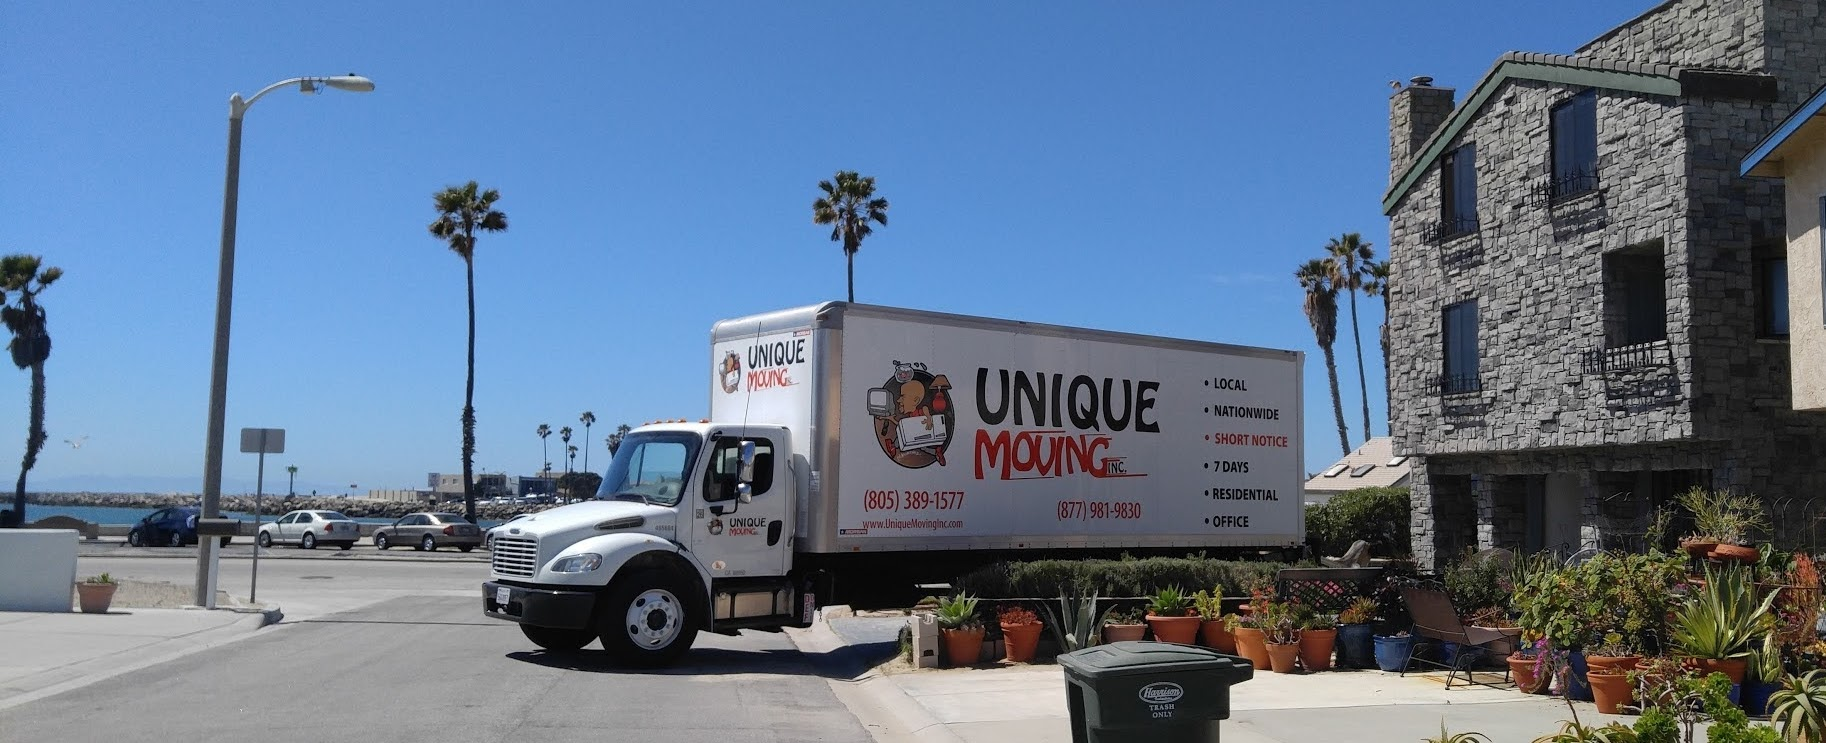 moves in oxnard | Oxnard moving company